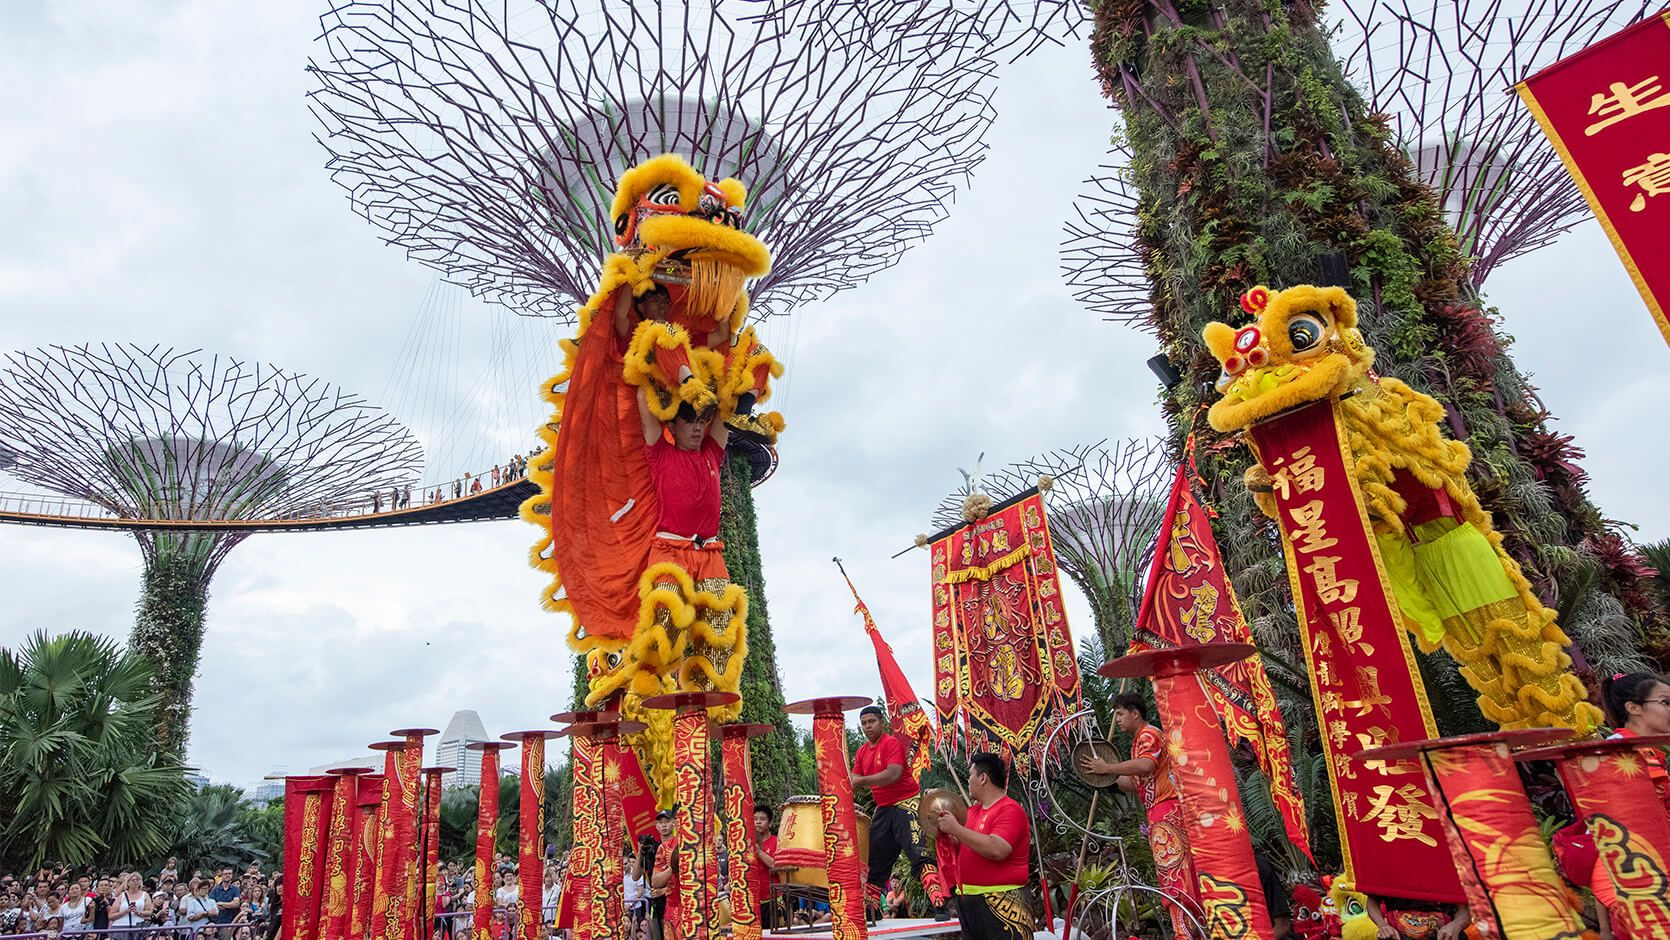 Spring Surprise Gardens by the Bay 2020